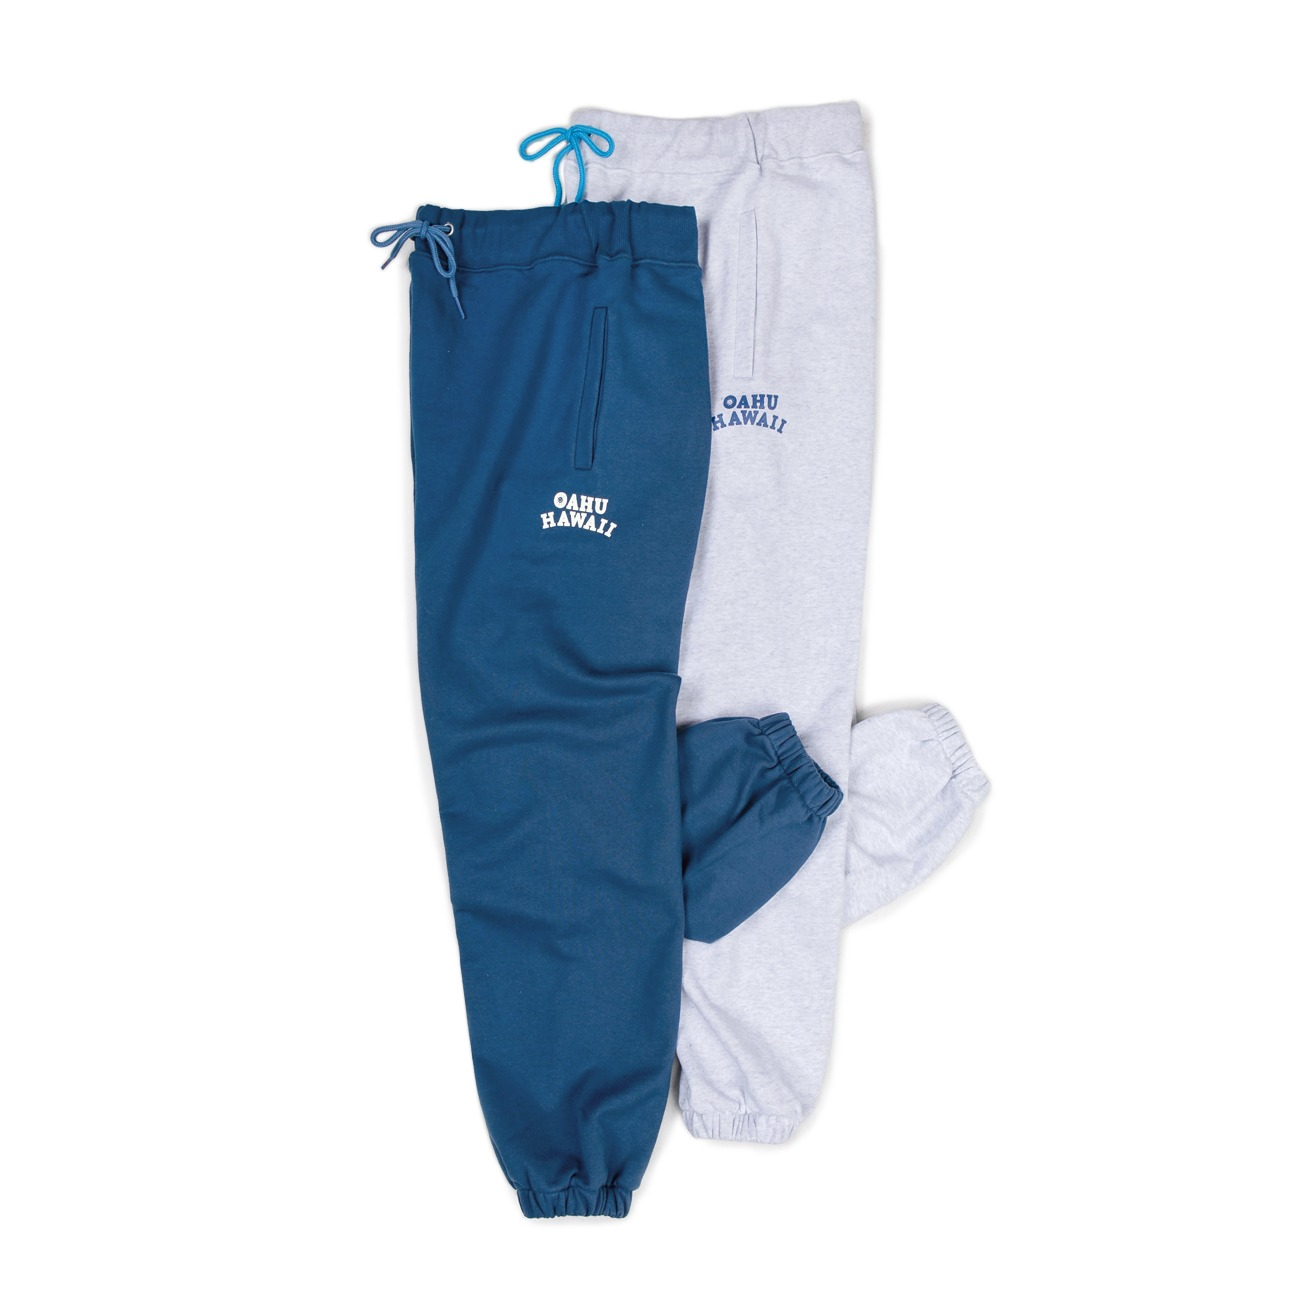 Oahu Hawaii Sweat Pants